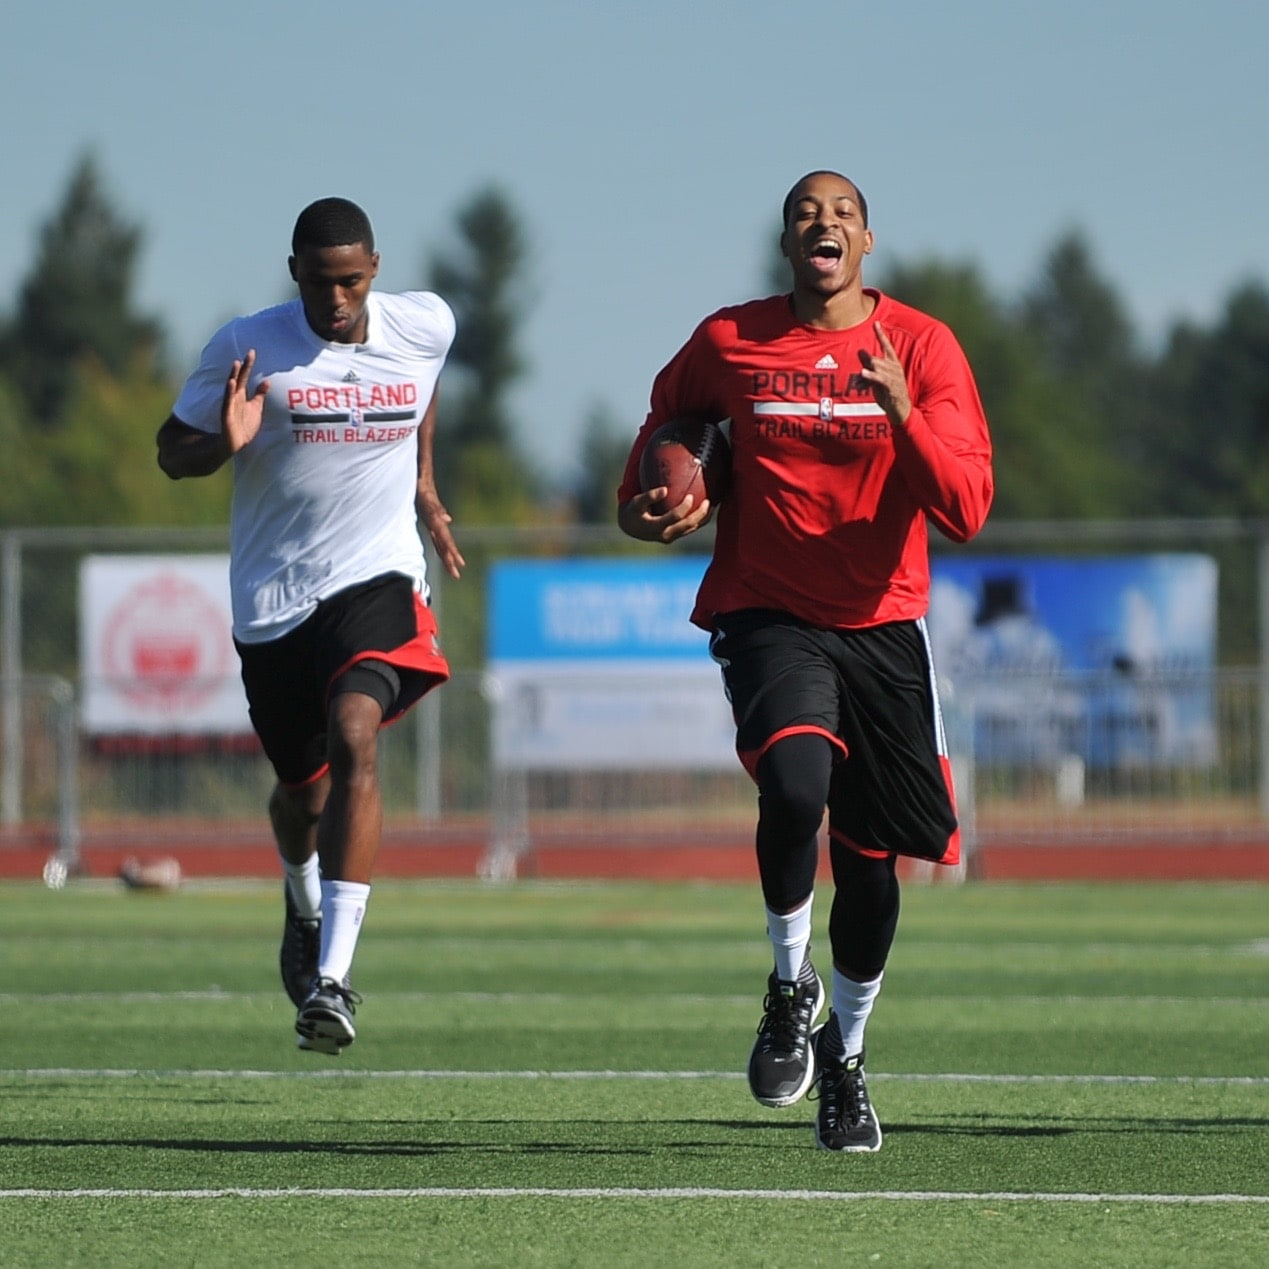 Blazer Team Roster 2013: Photos: Players Tackle Local Football Field